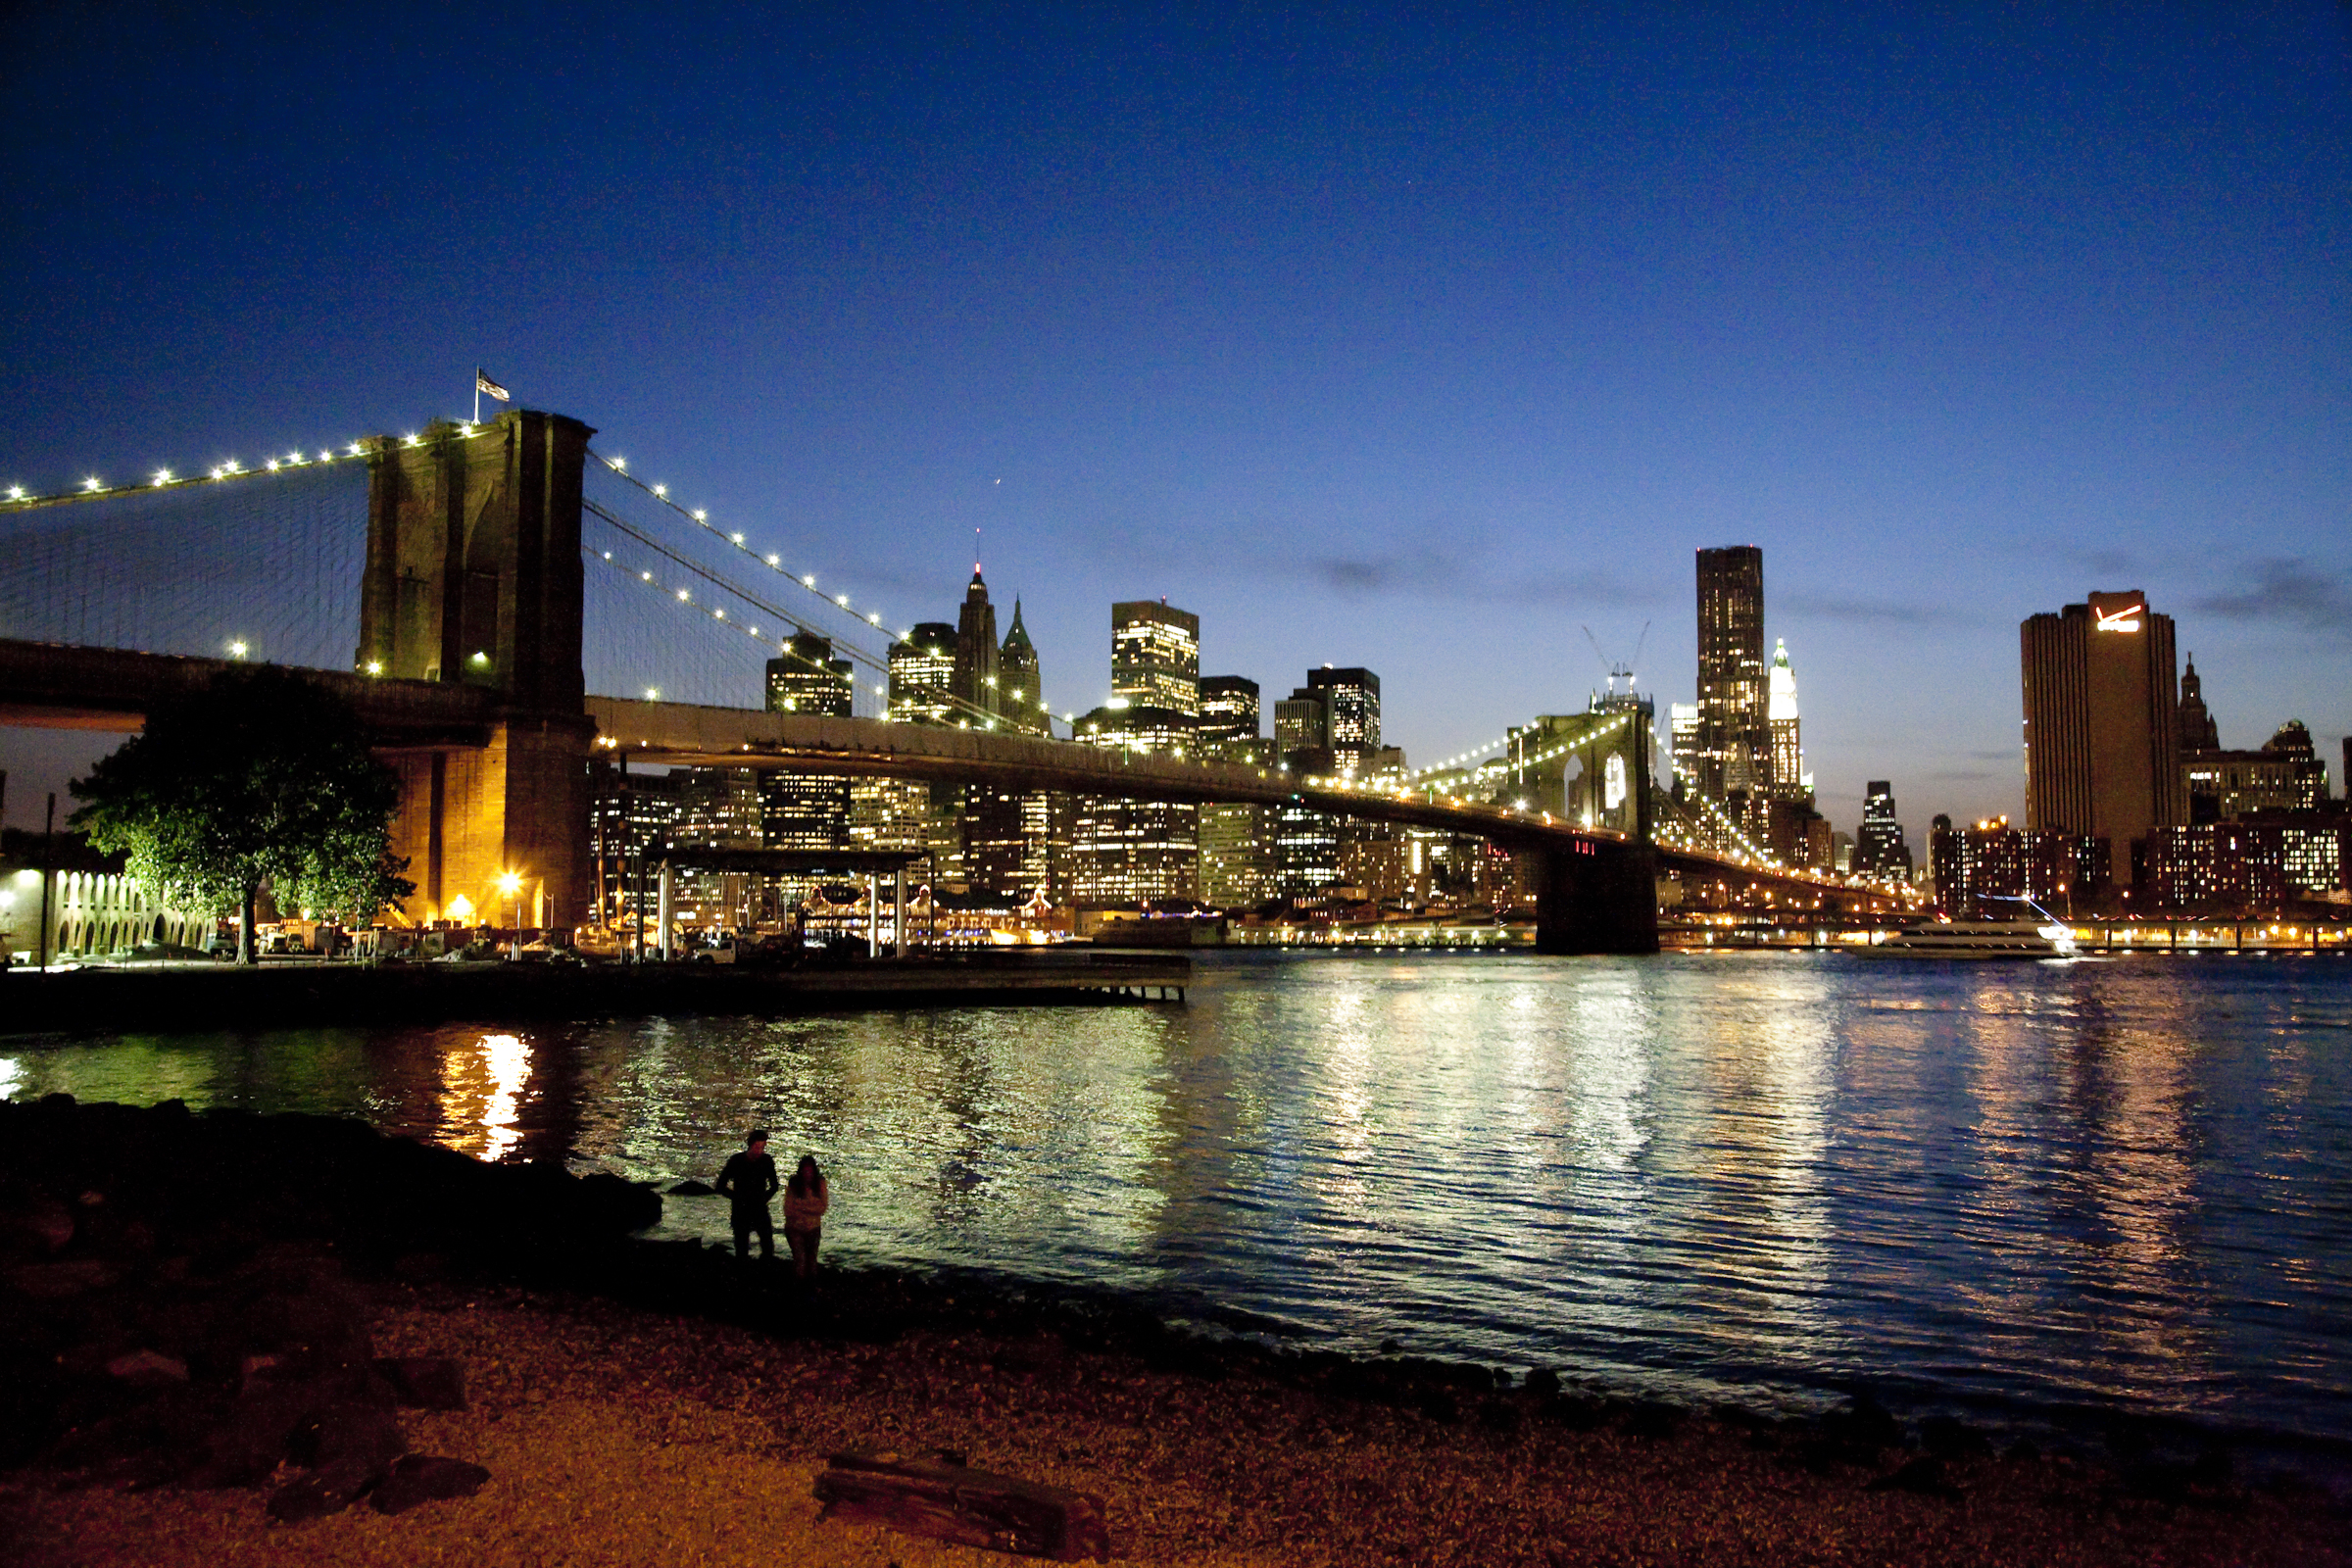 The East River skyline after dark